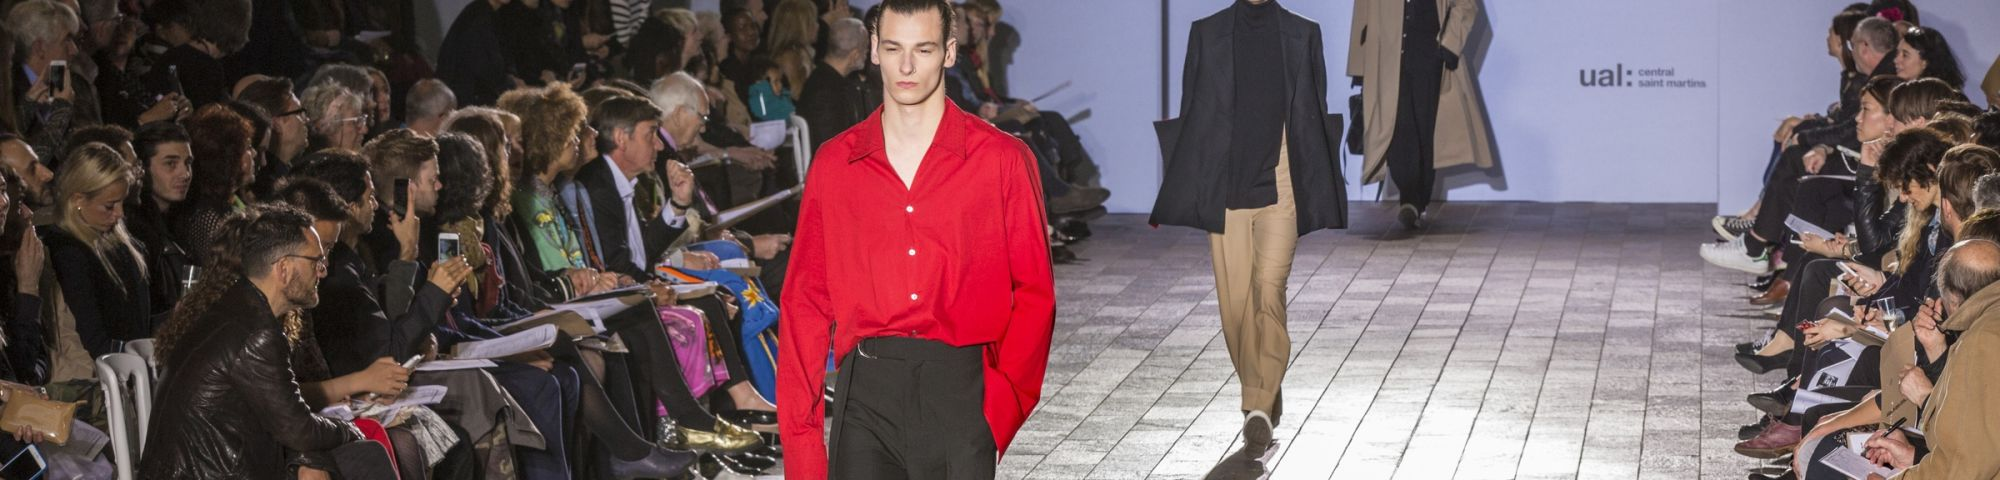 Menswear Design Online Short Course Ual